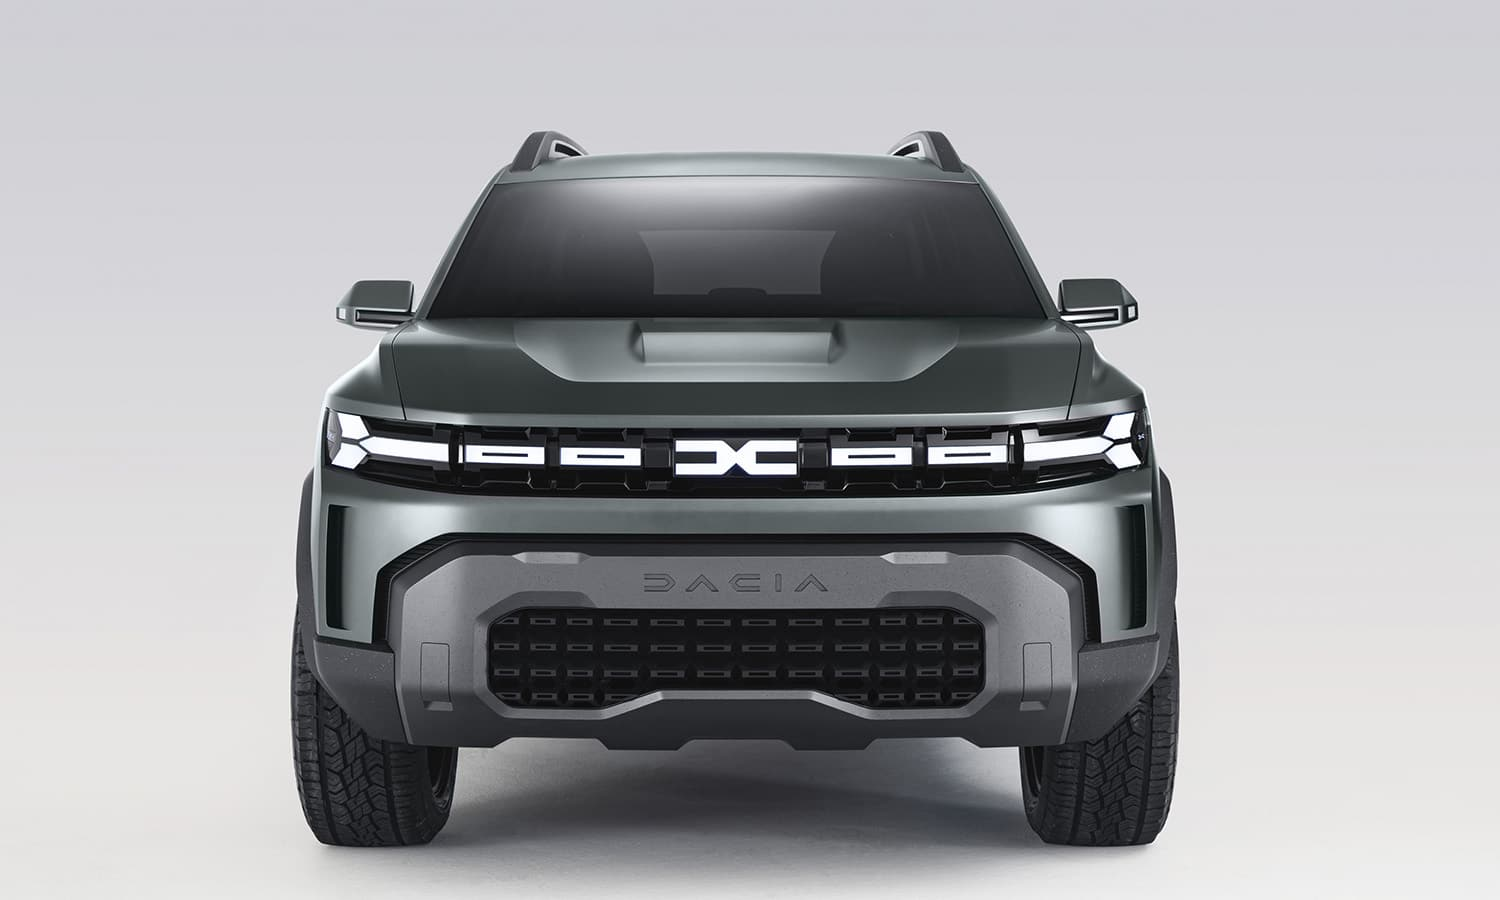 Frontal Dacia Bister Concept